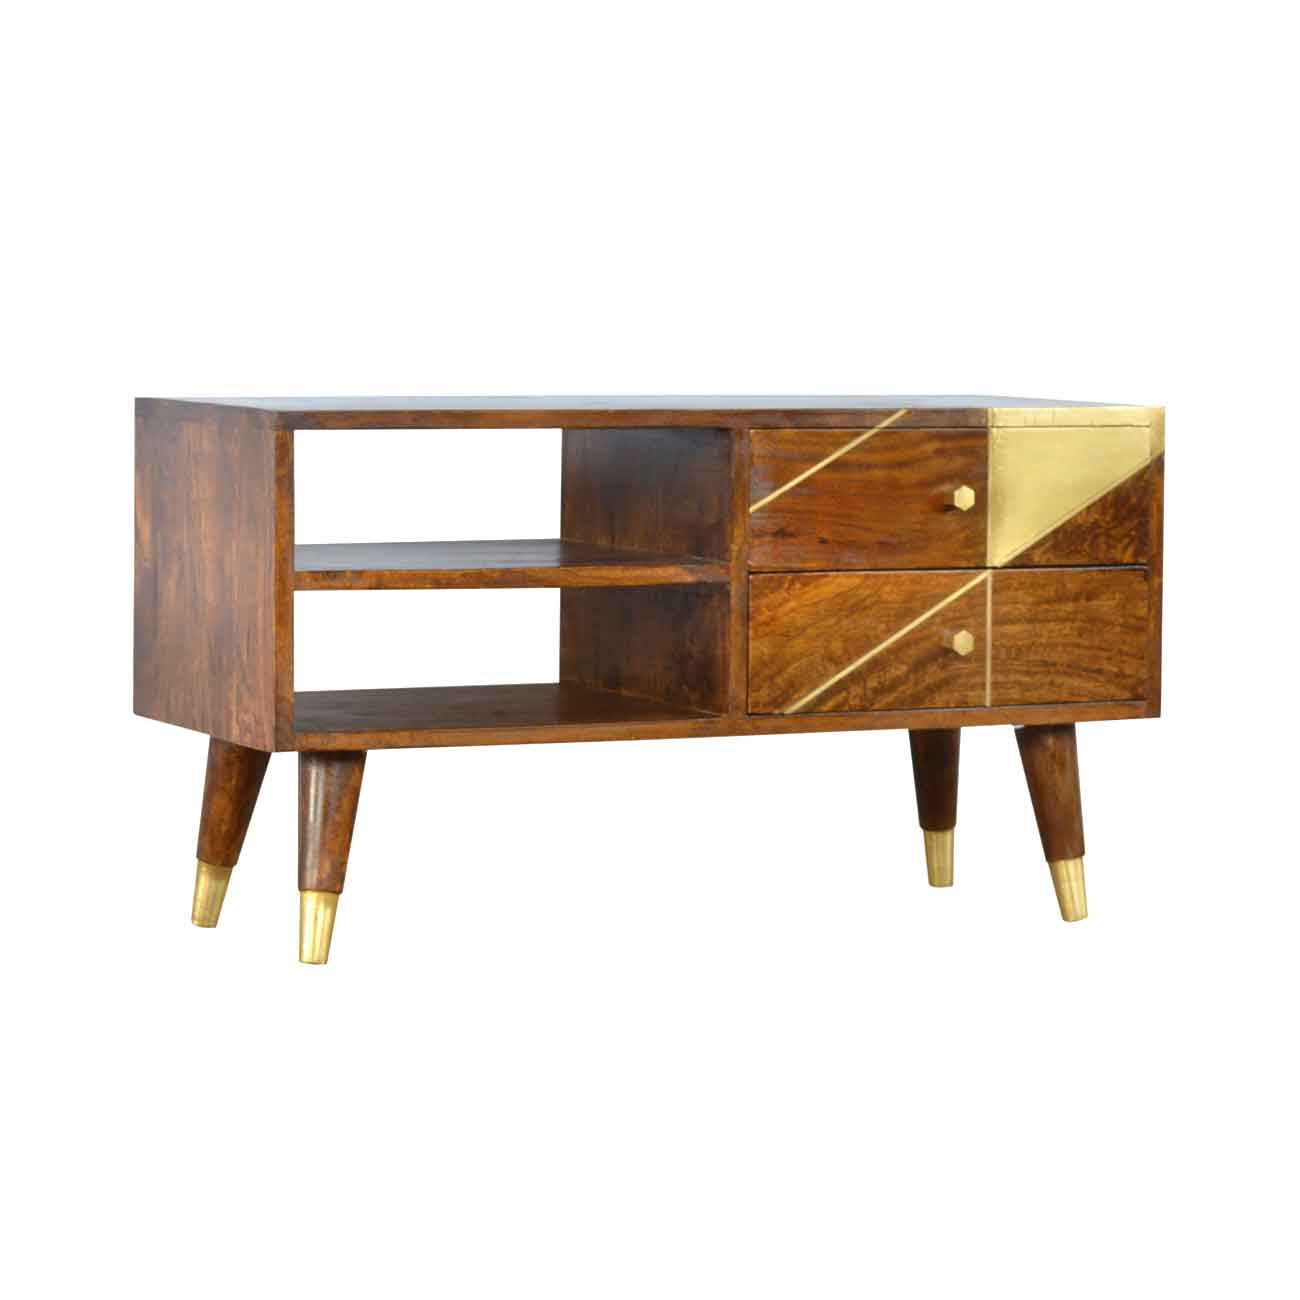 ARTISAN Mango Wood Geometric Design Media Unit with Gold Detail